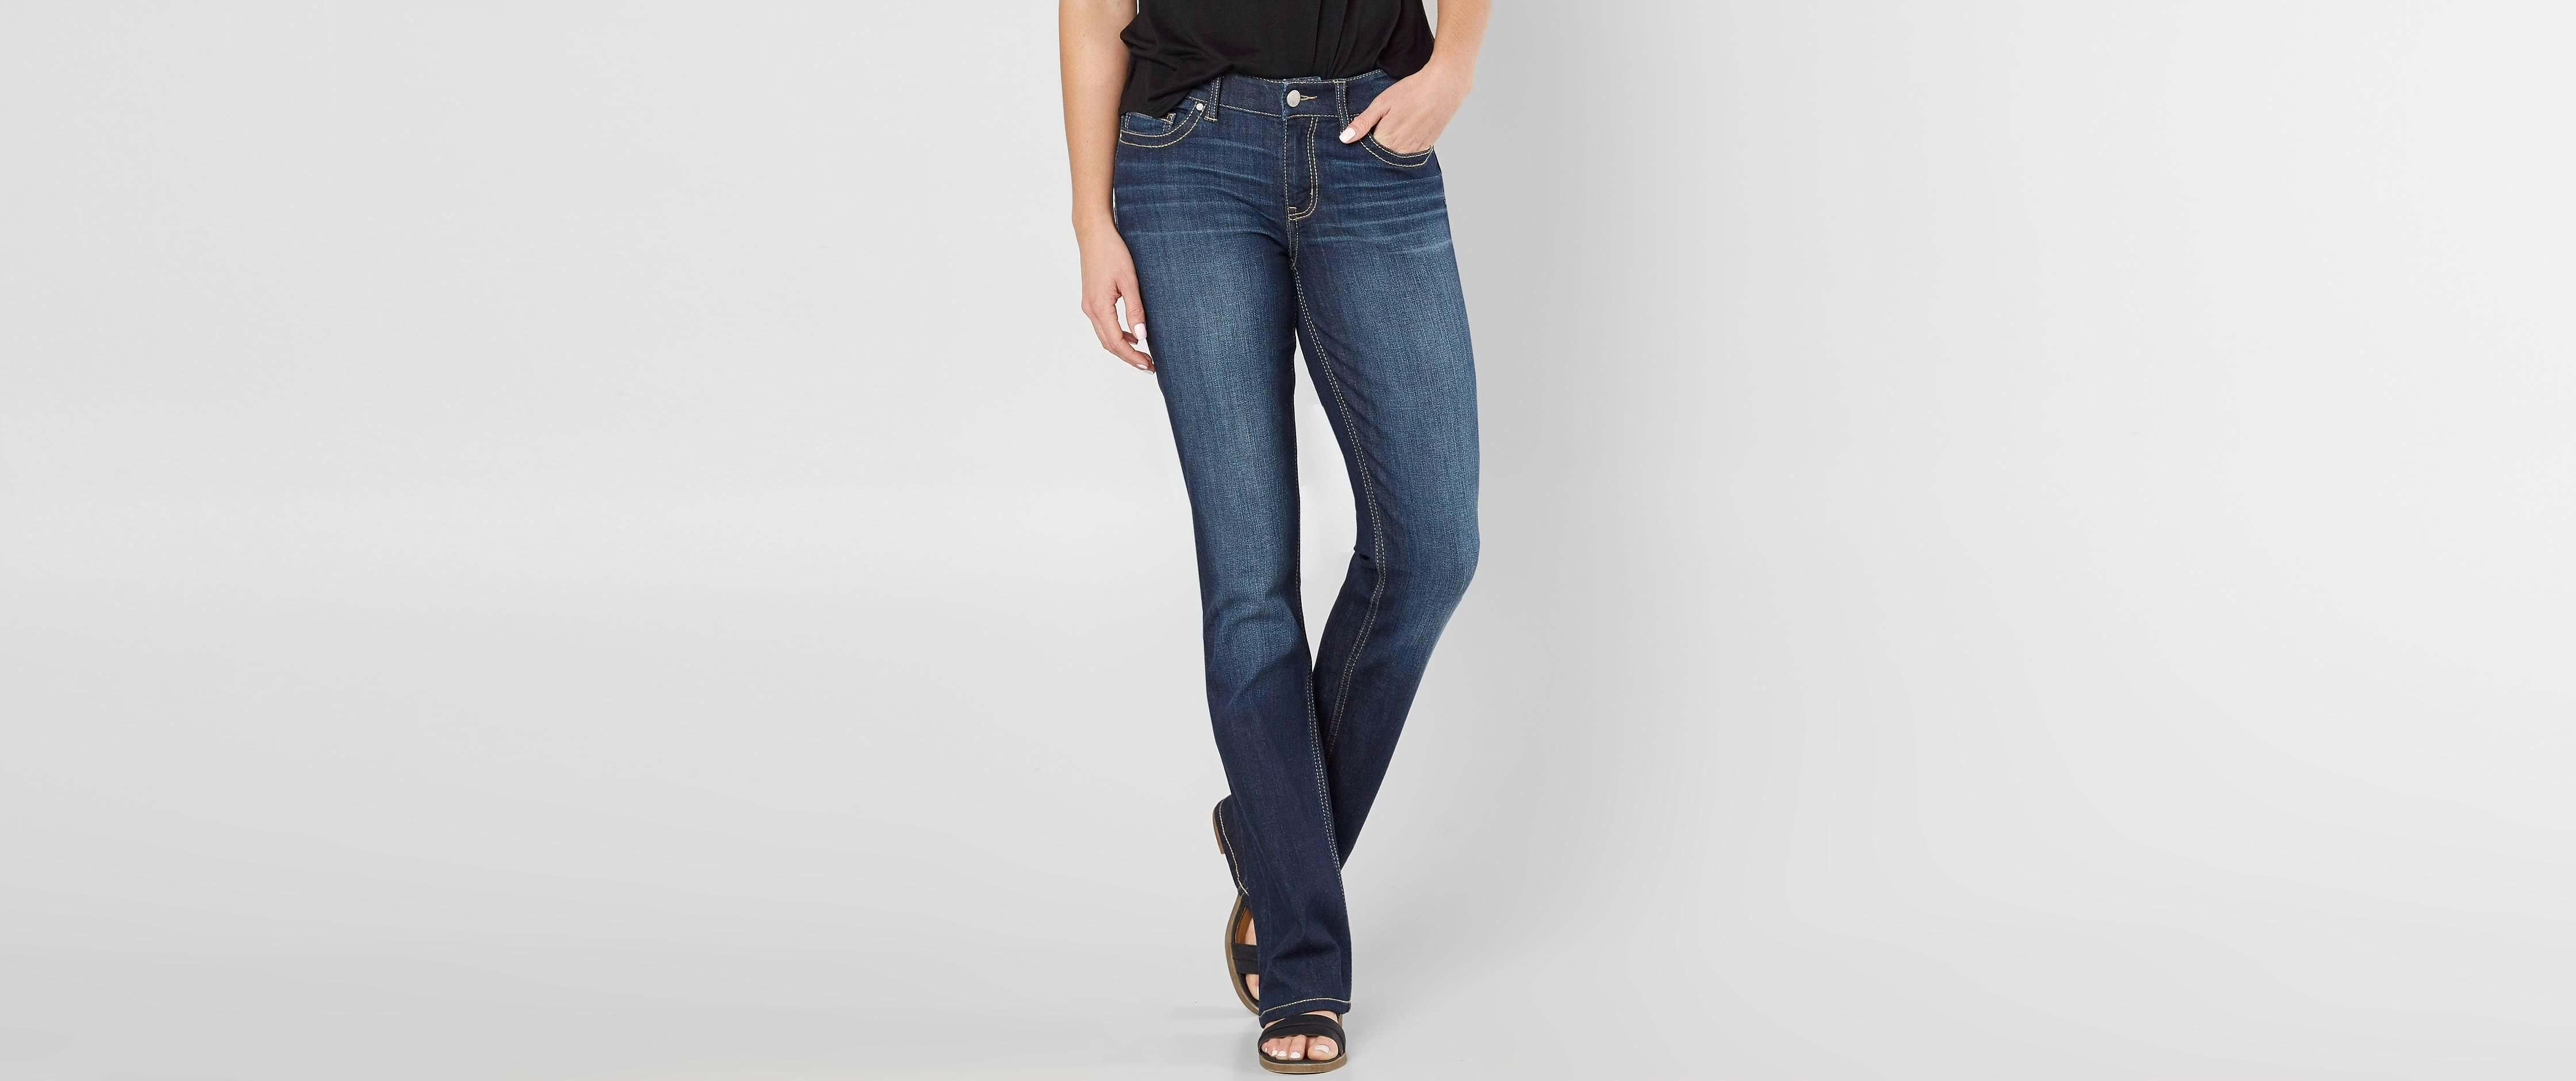 Payton boot stretch jean bke also women   jeans in madron buckle rh